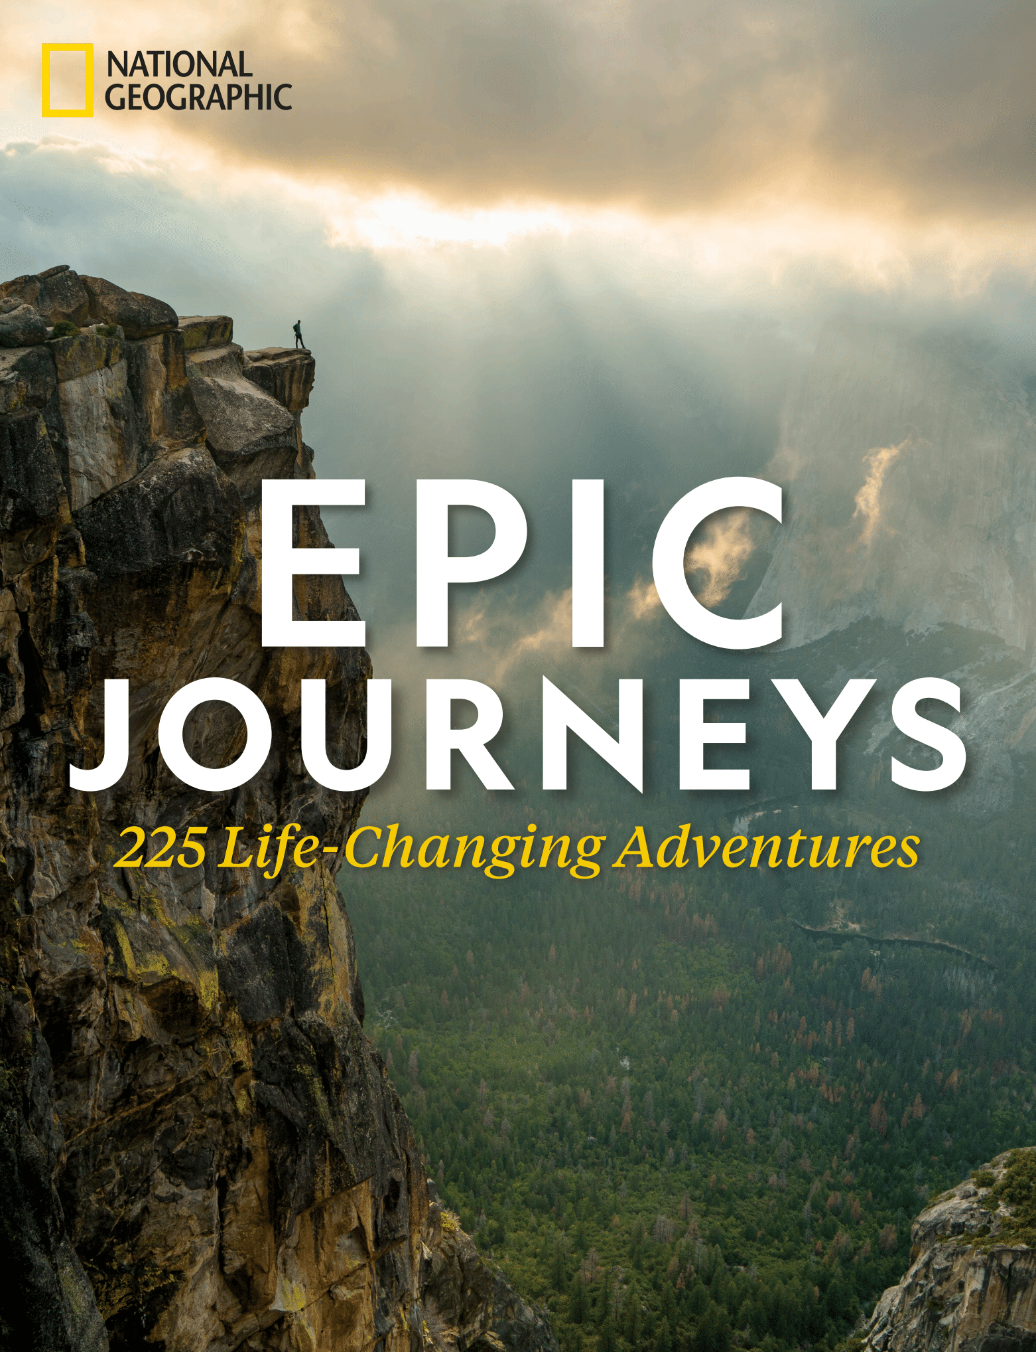 National Geographic's 'Epic Journeys: 225 Life-Changing Adventures'